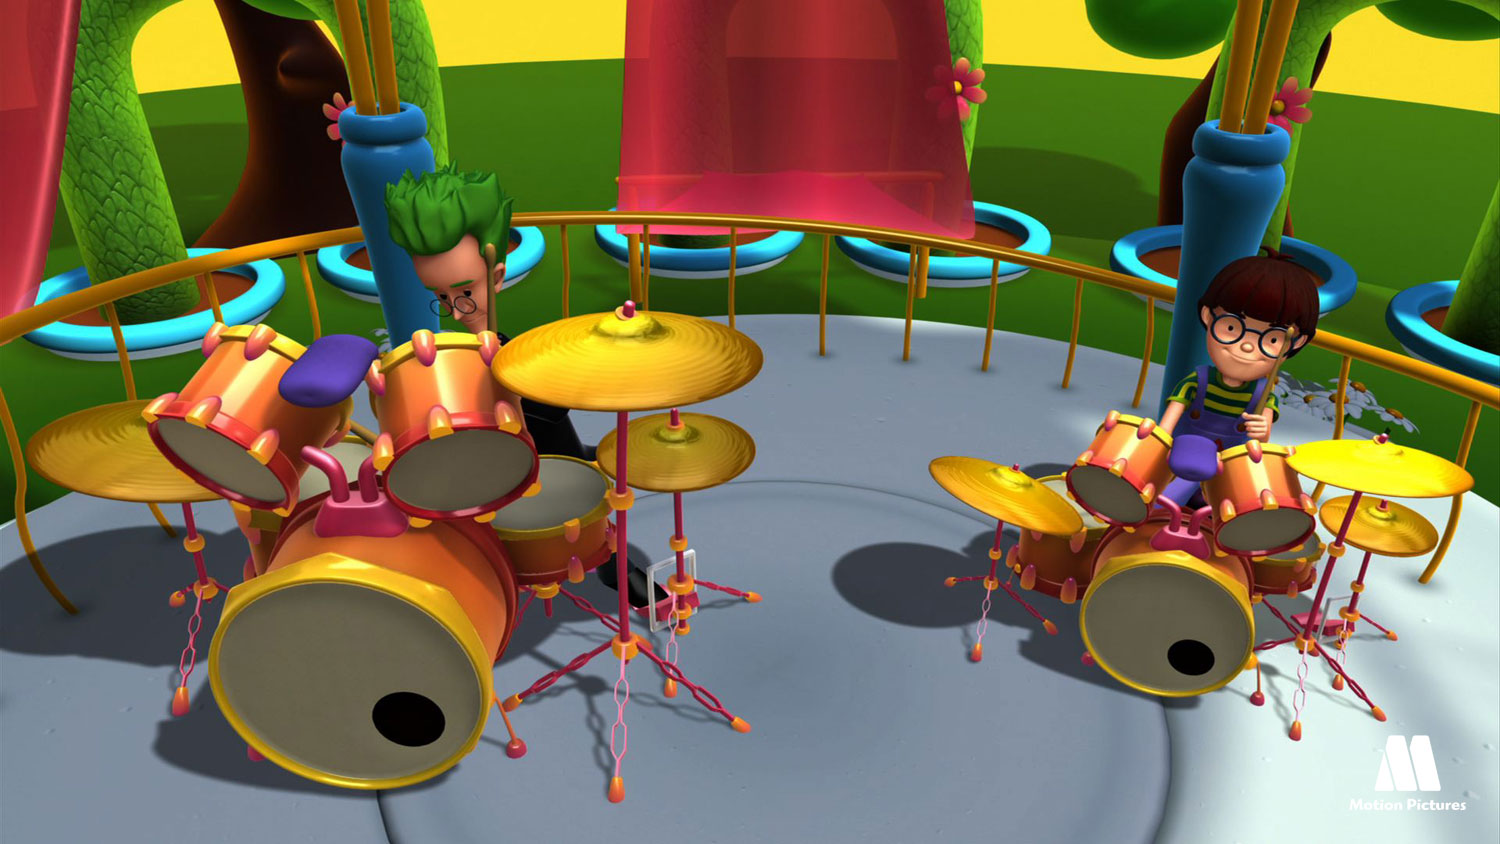 La bateria, musica - Alex, Serie animacion educativa, education cartoon series